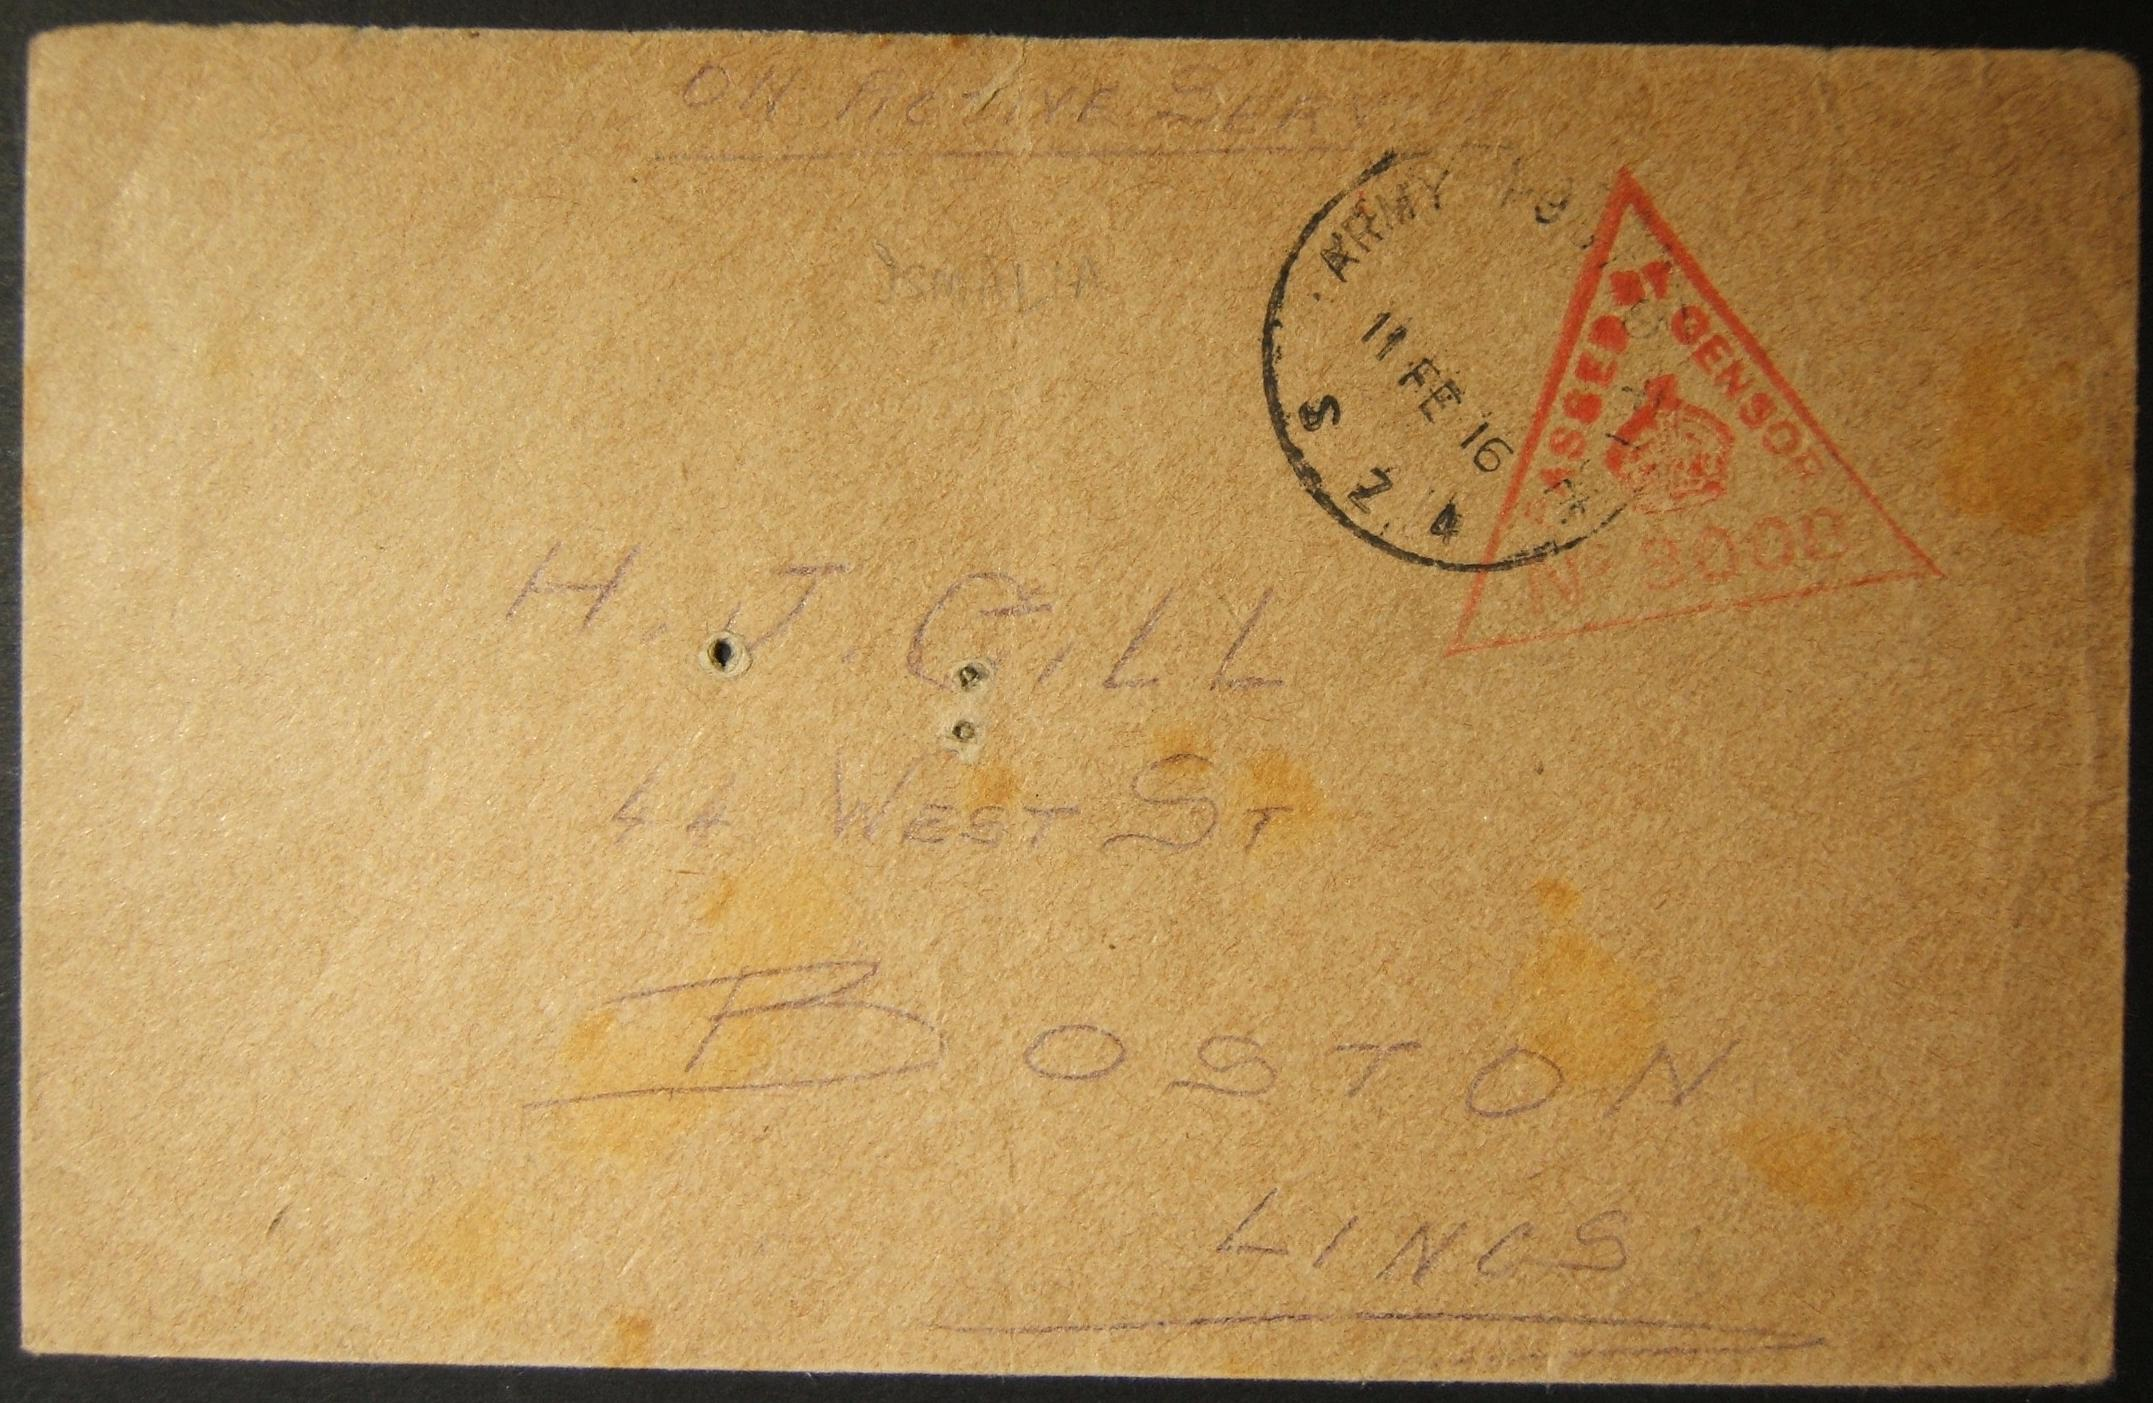 2/1916 WWI Egypt British military mail with earliest known use of APO SZ 4 postmark